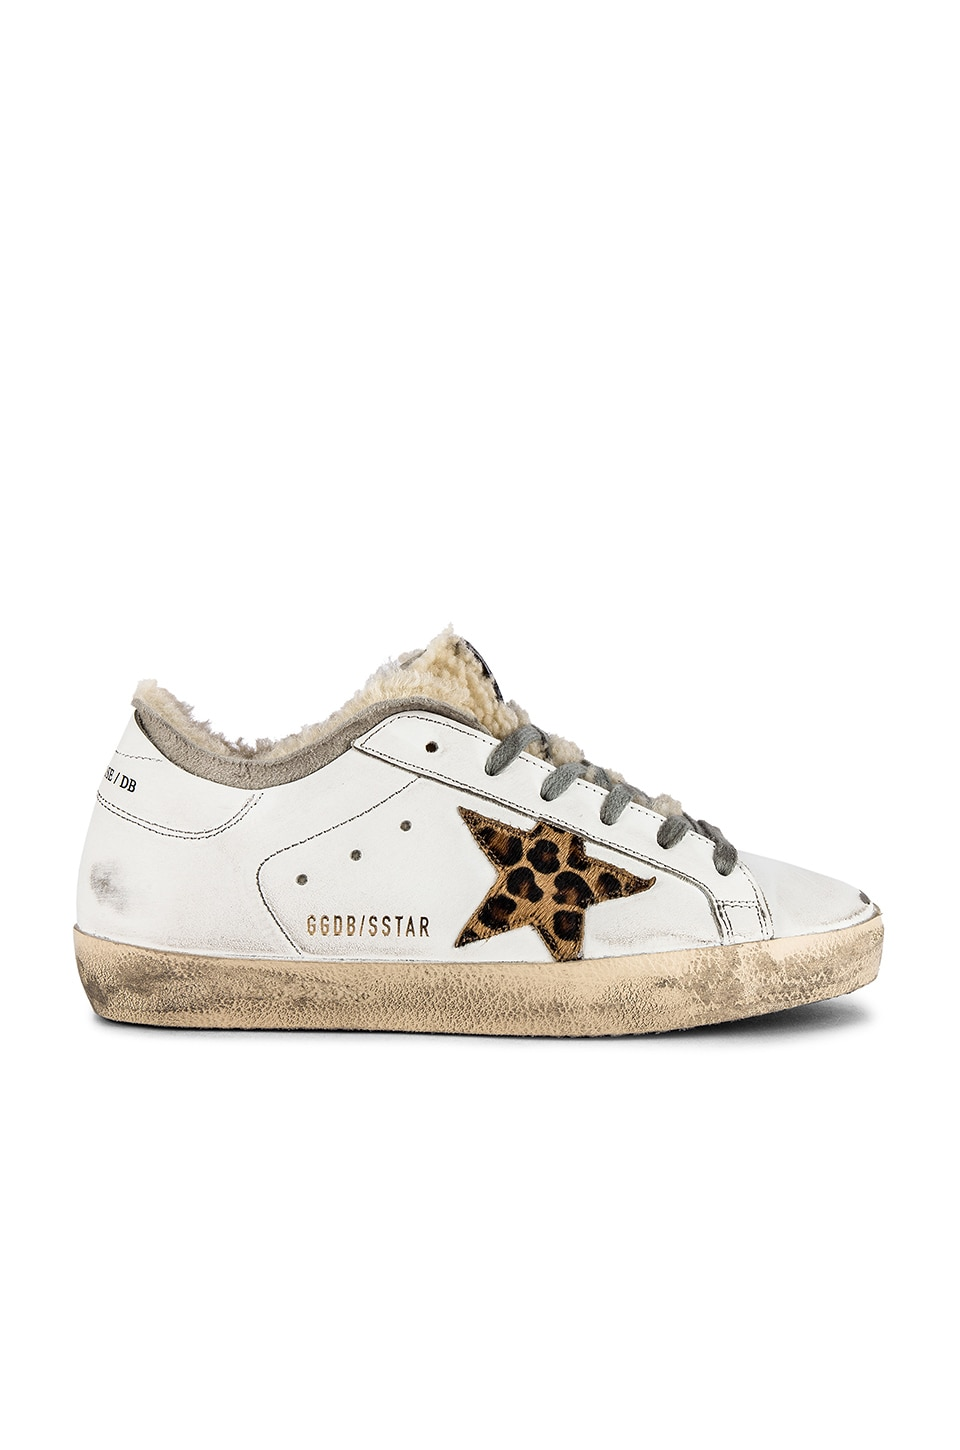 Golden Goose Superstar Sneaker in White & Leopard